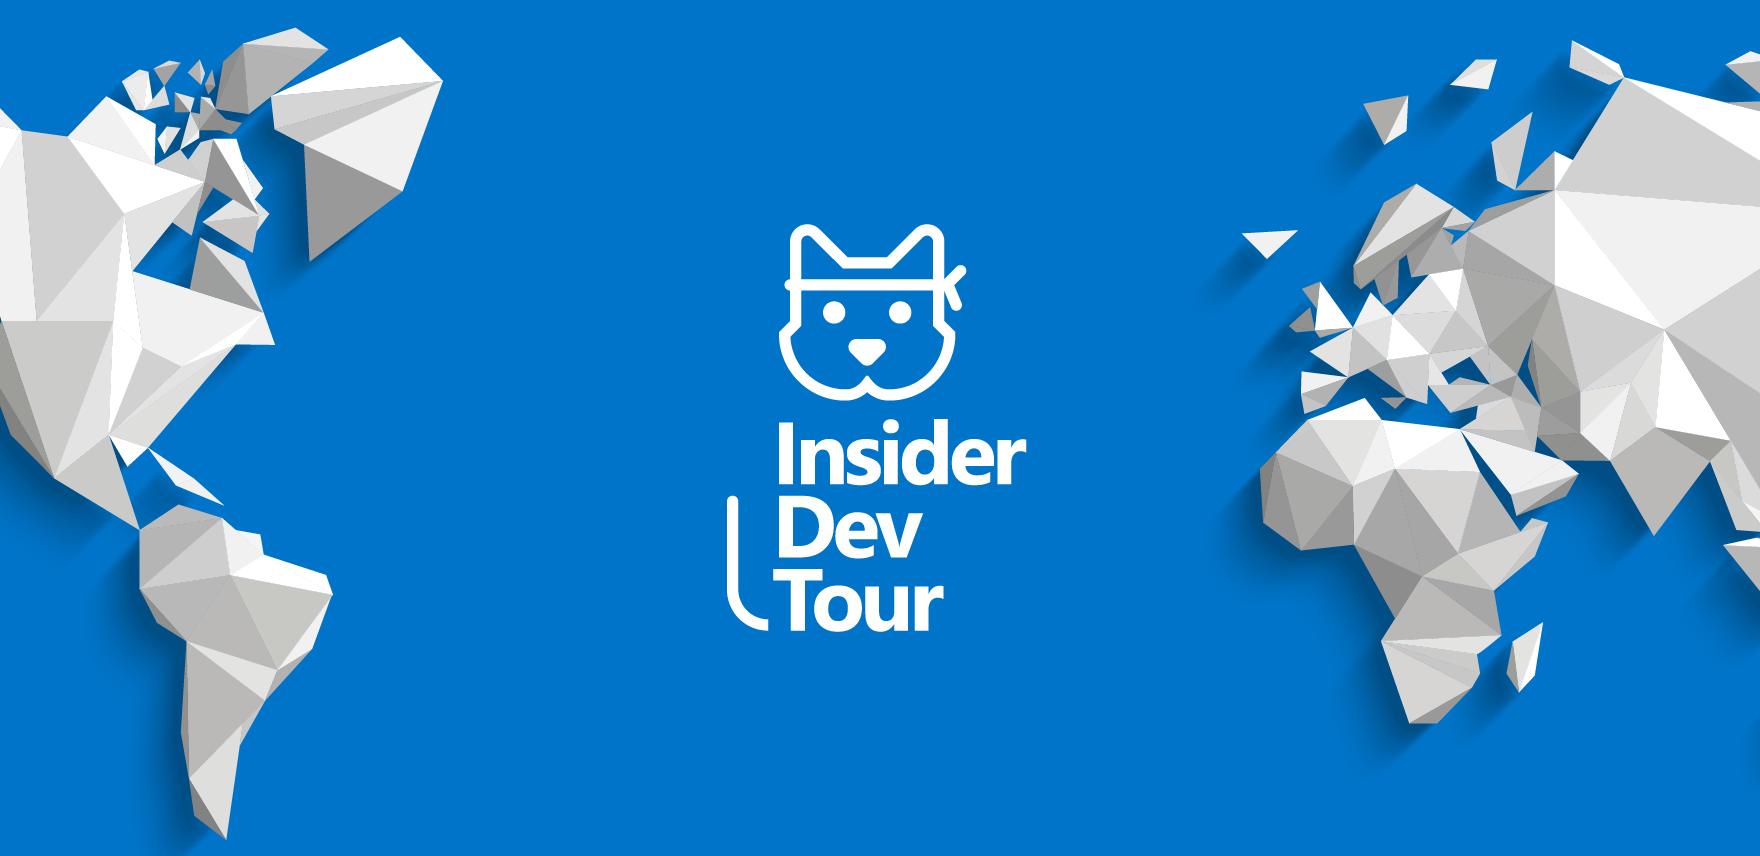 Announcing the Insider Dev Tour 2019 77815c61c577d84c3209f86a2db62e01.png